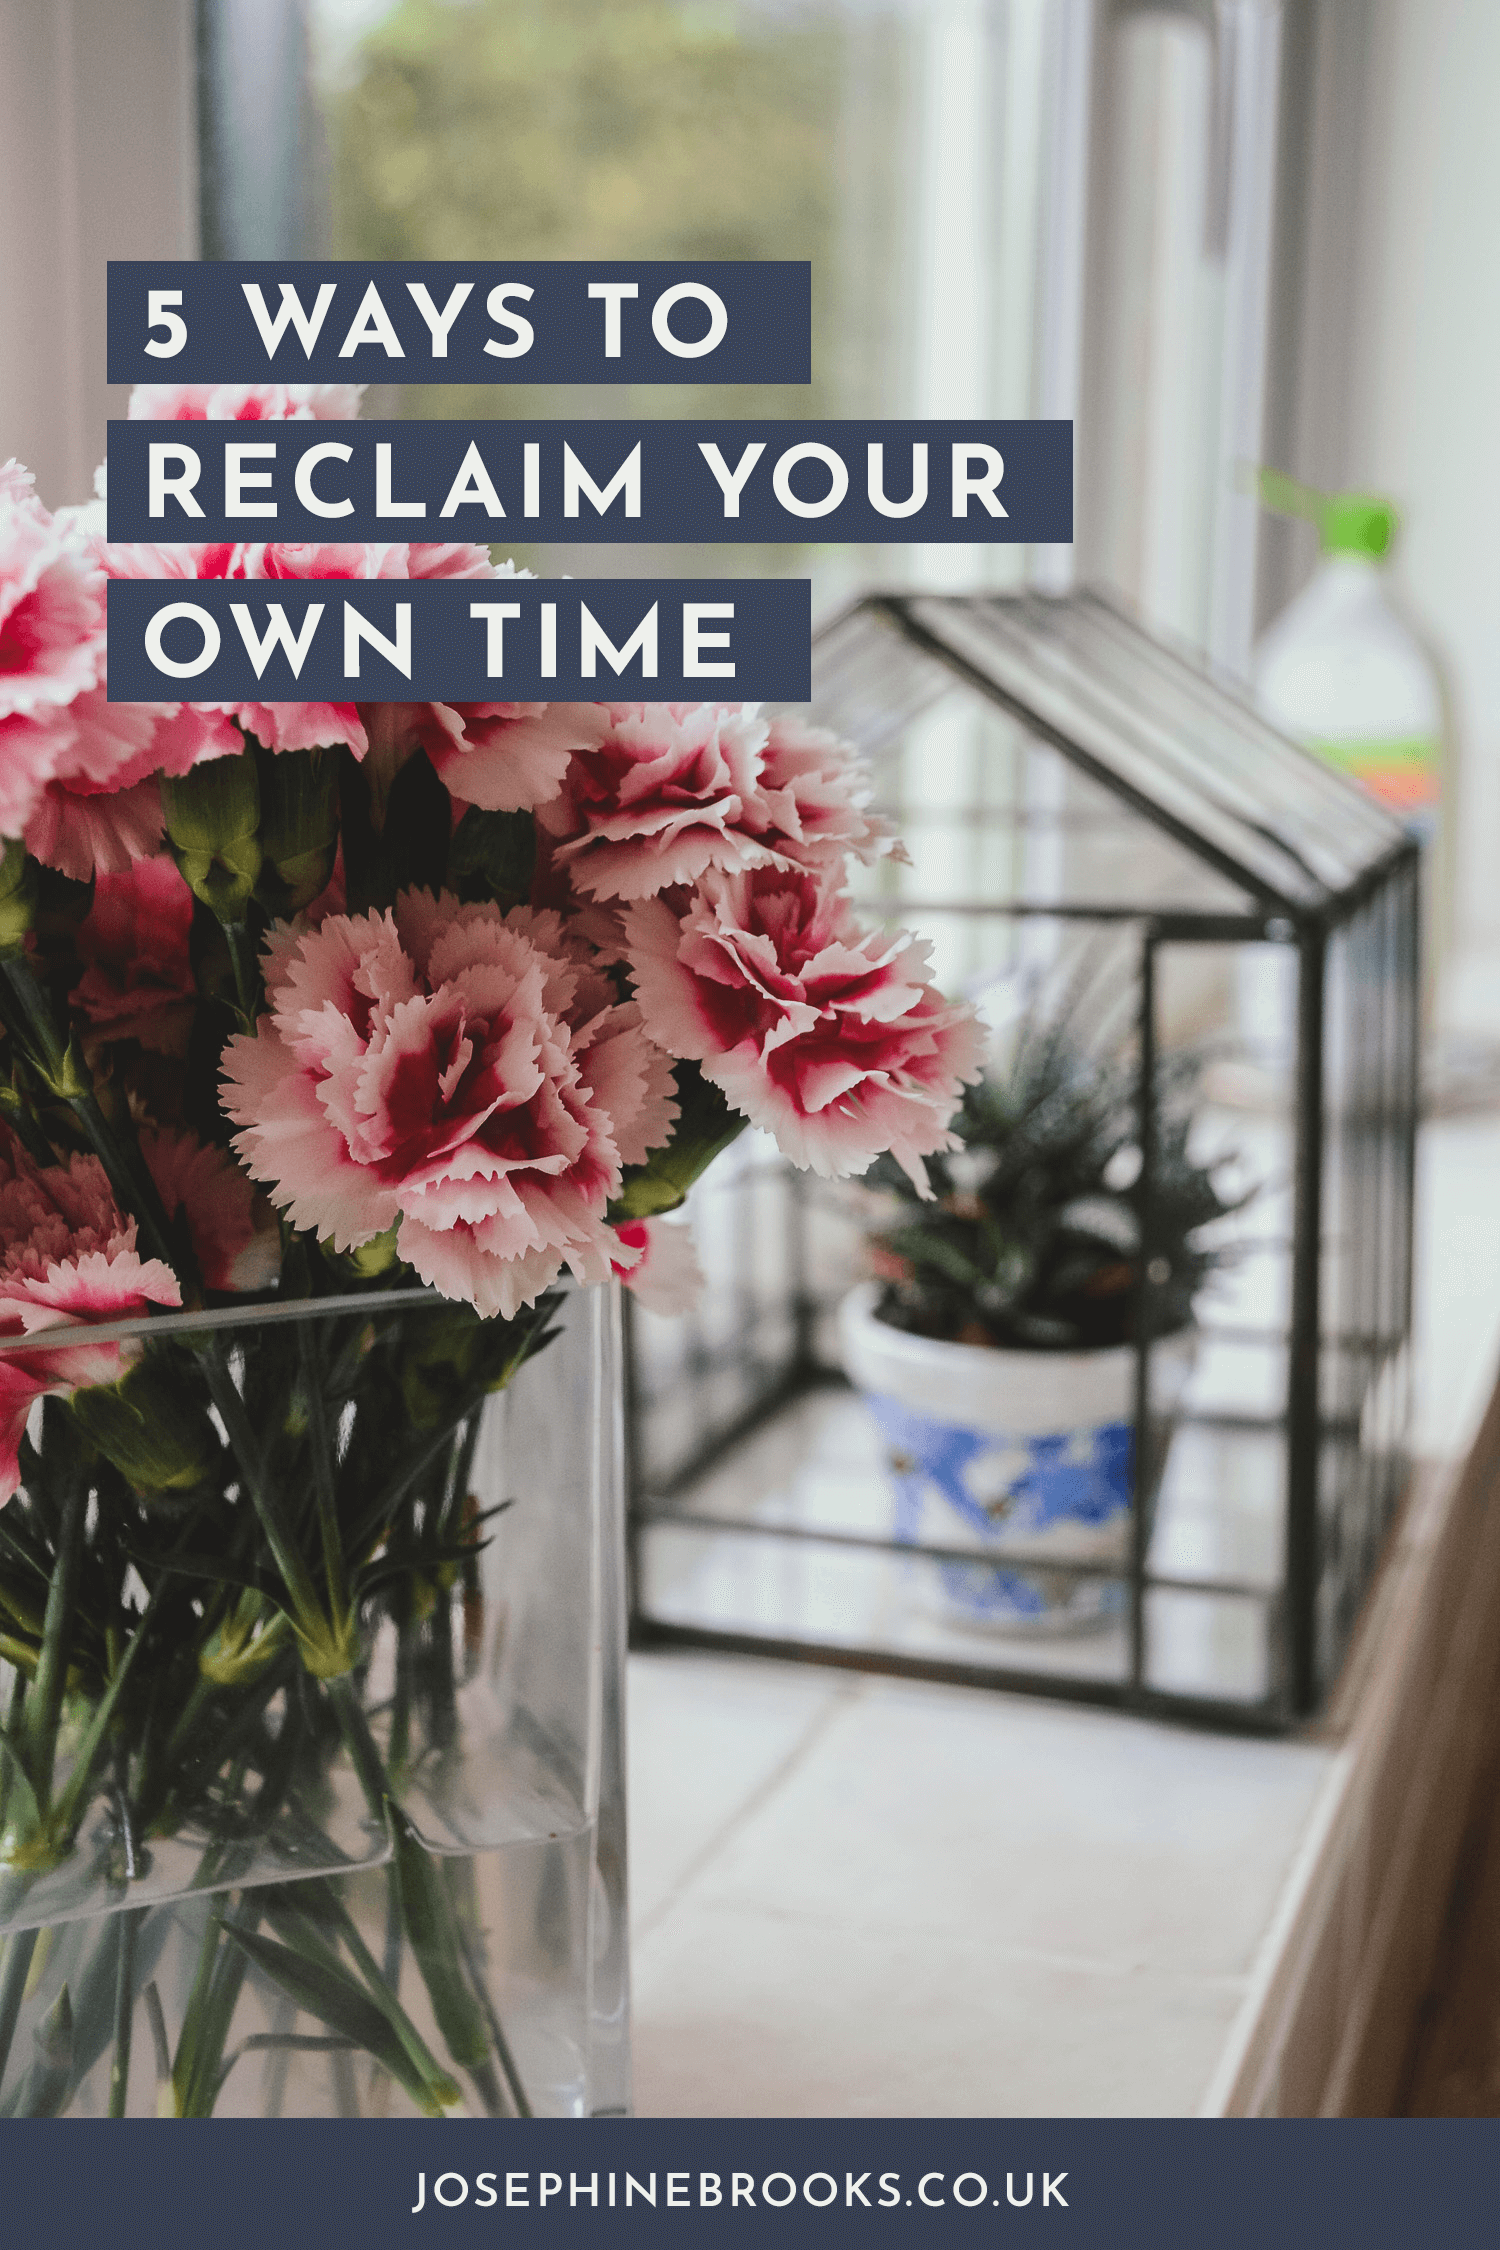 5 ways to reclaim your own time and make more time for you and your side-hustle, How to reclaim your own time, time management for creatives, time management tips for makers Designers, time management hacks, getting things done | Josephine Brooks